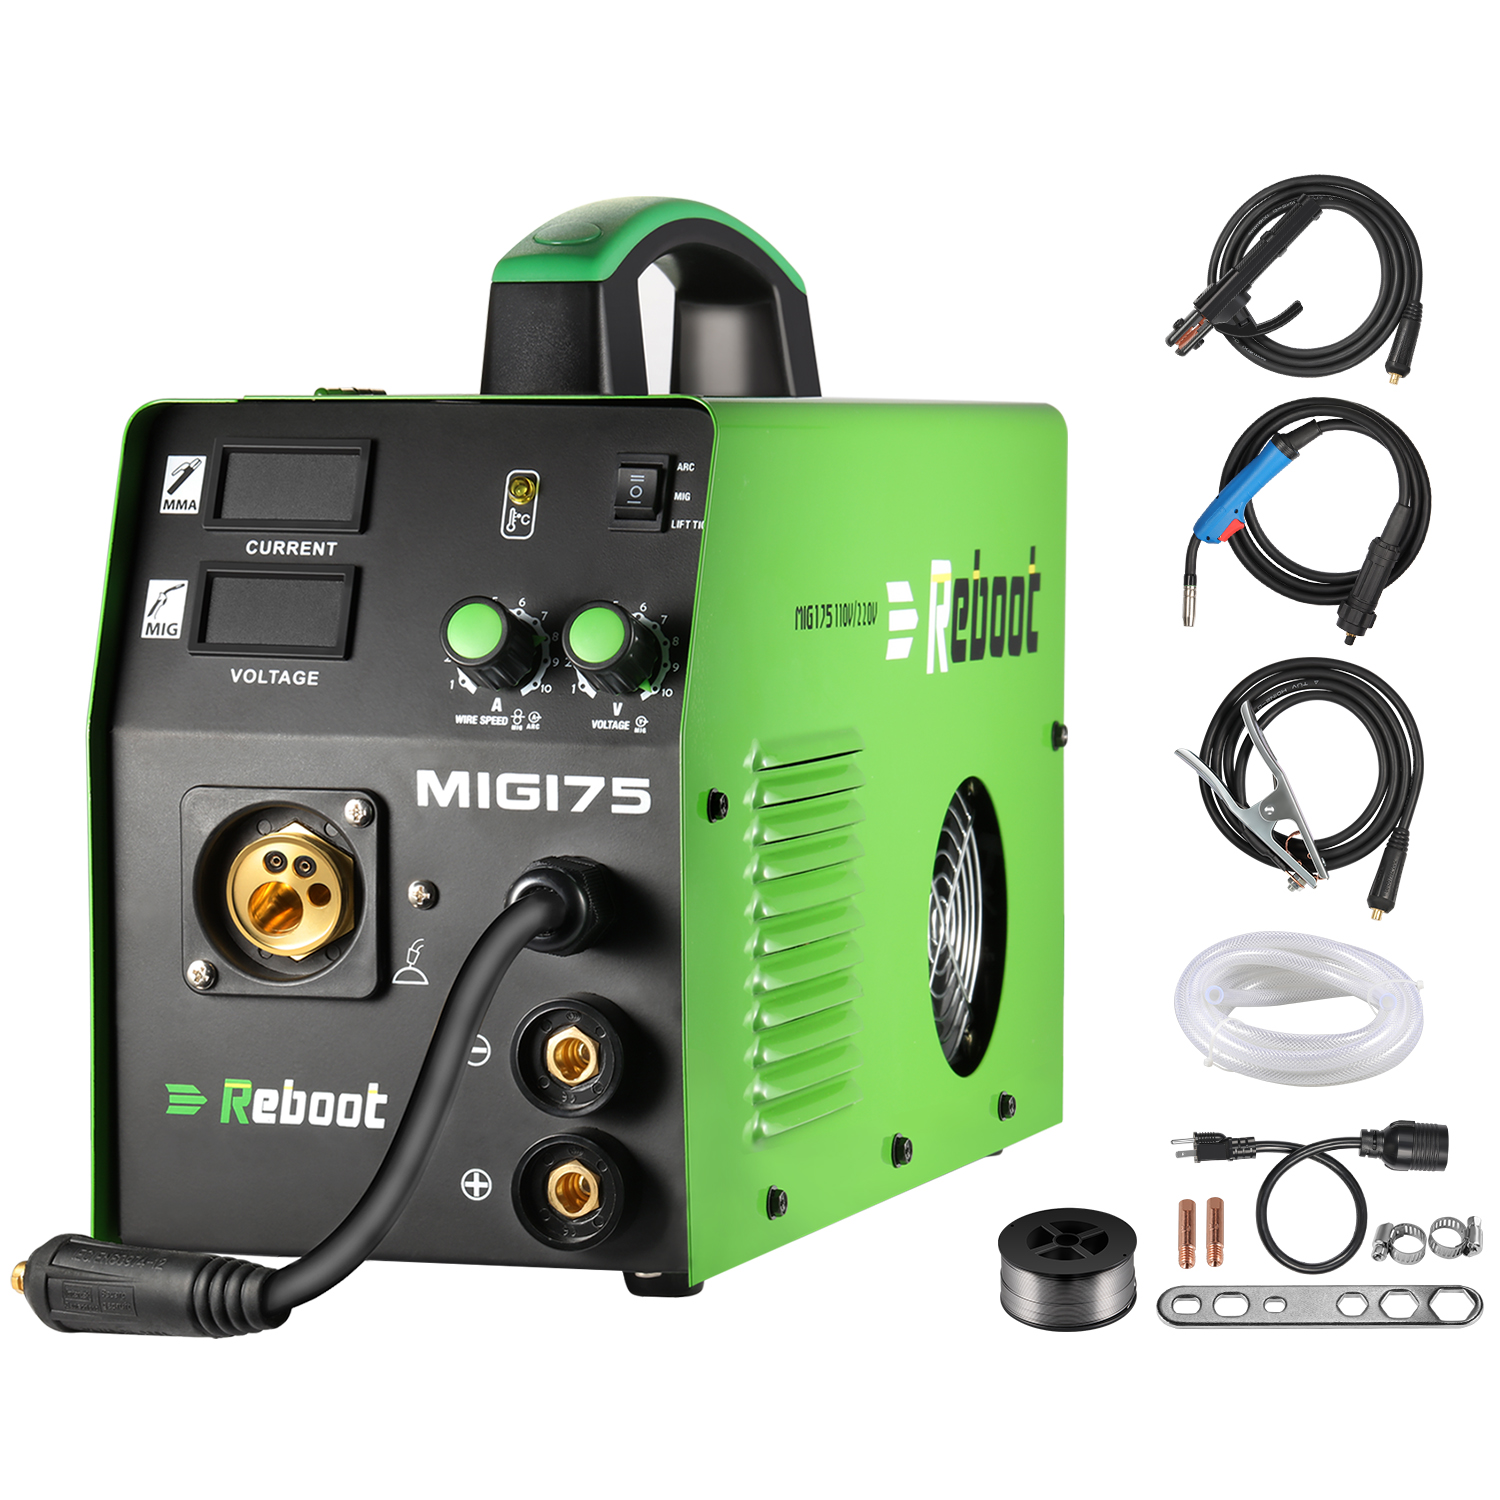 MIG Welder MIG-175 Gas/Gasless DC 220V 5KG 2 In 1 Flux Core Wire And Solid Wire IGBT Inverter Welding Machine MMA MIG MAG